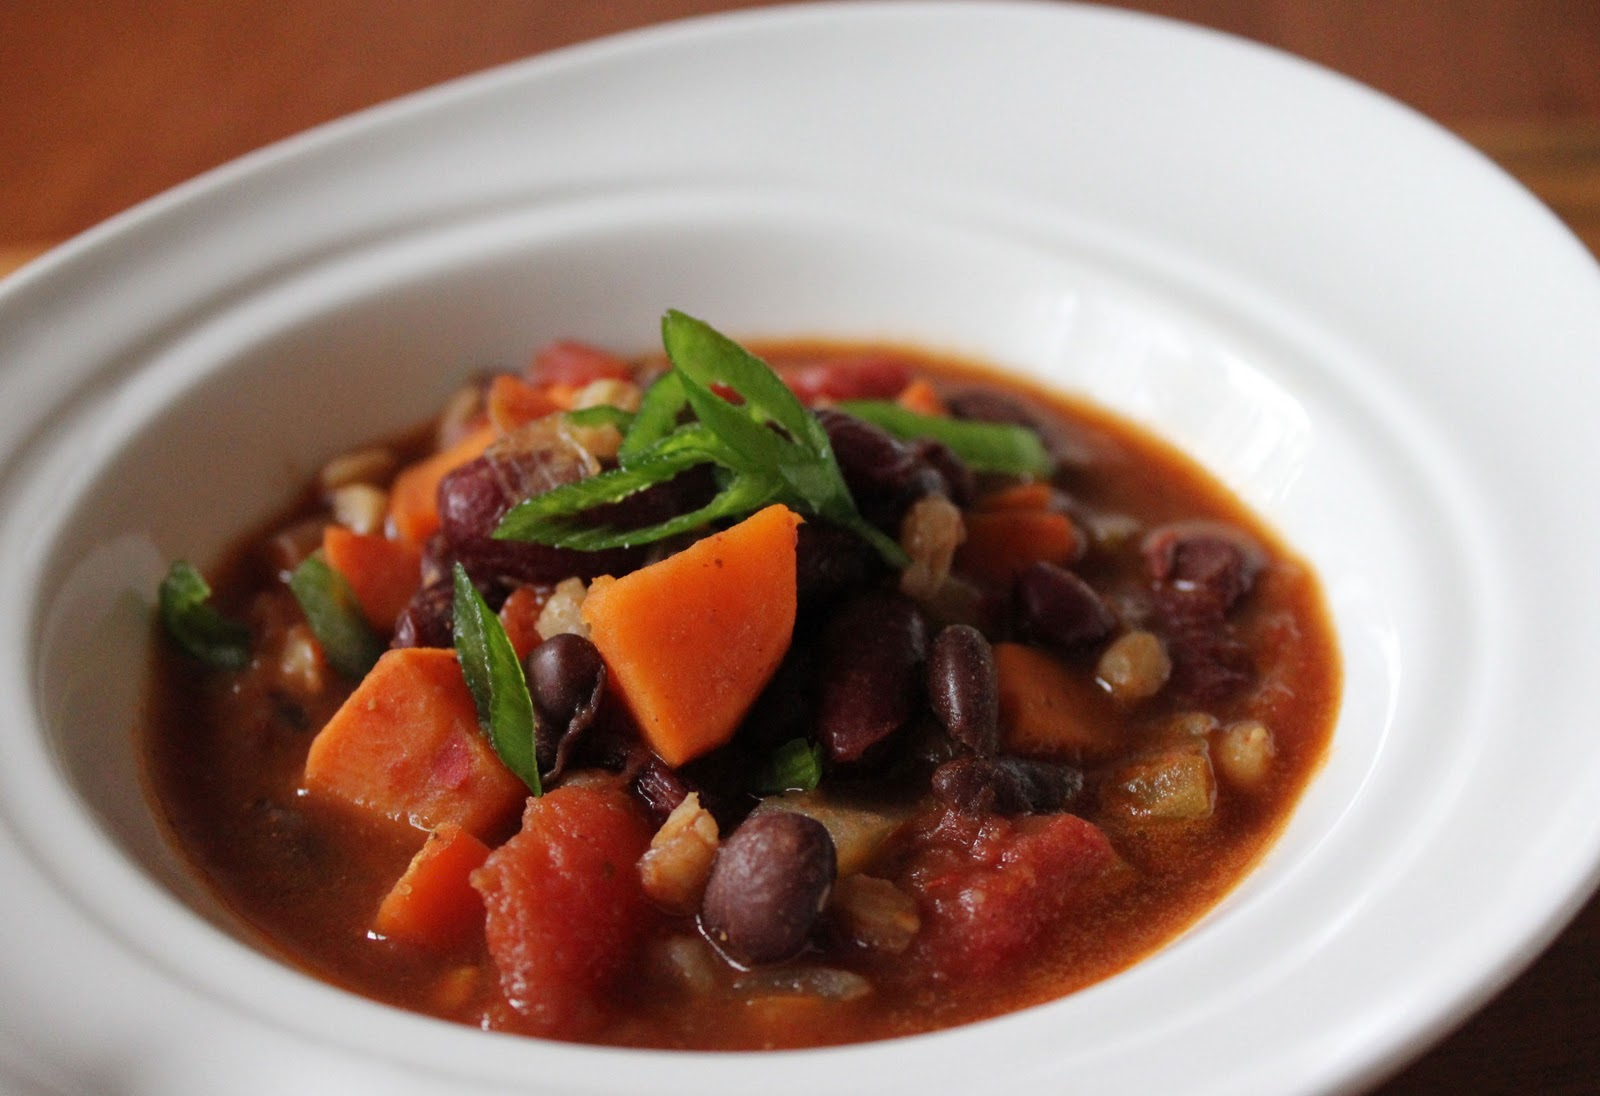 ... Whole Grain - Fiery Red Bean Chili Recipe - Jeanette's Healthy Living